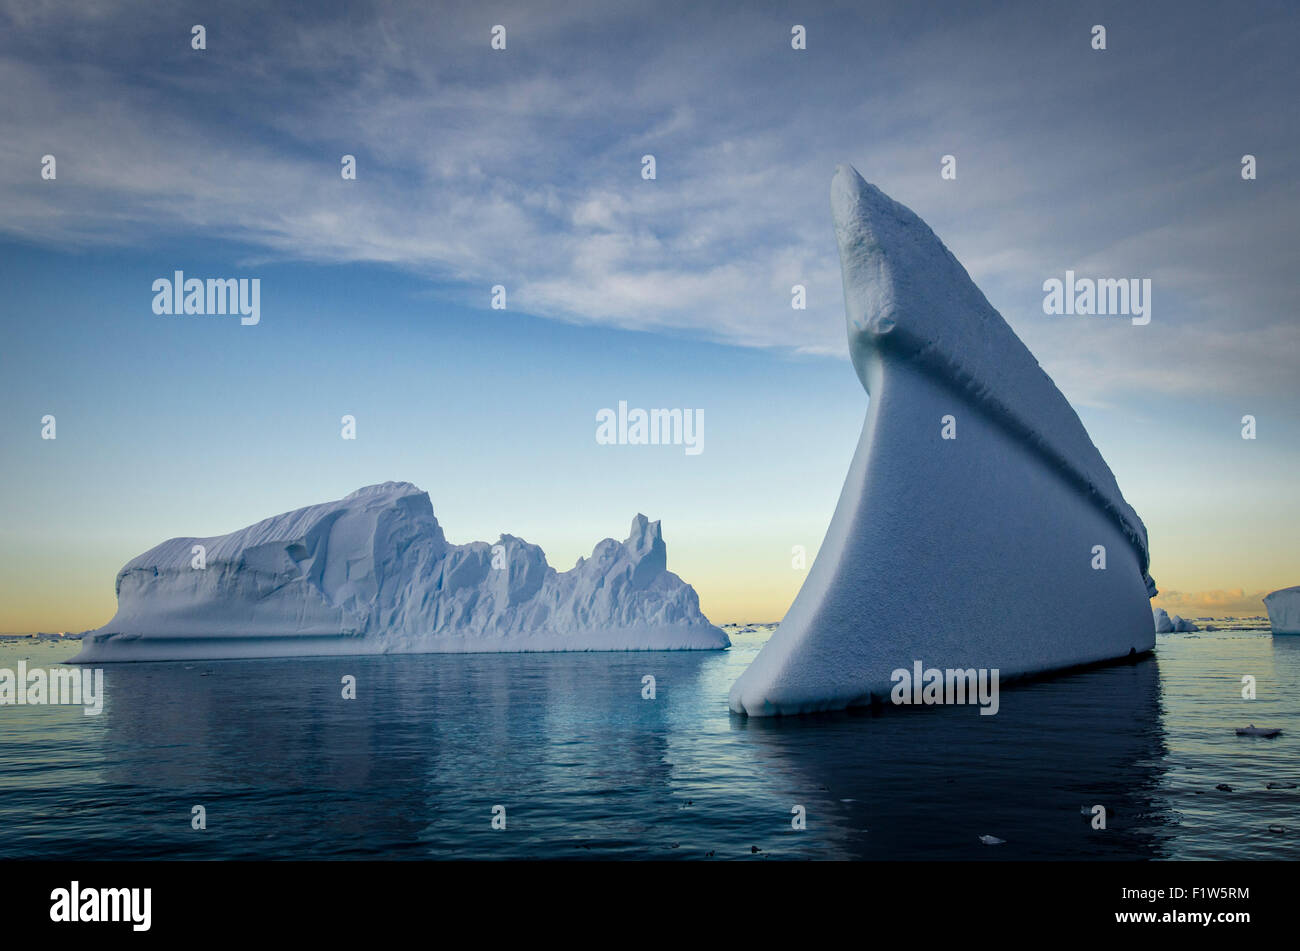 Un gros iceberg en Antarctique Photo Stock